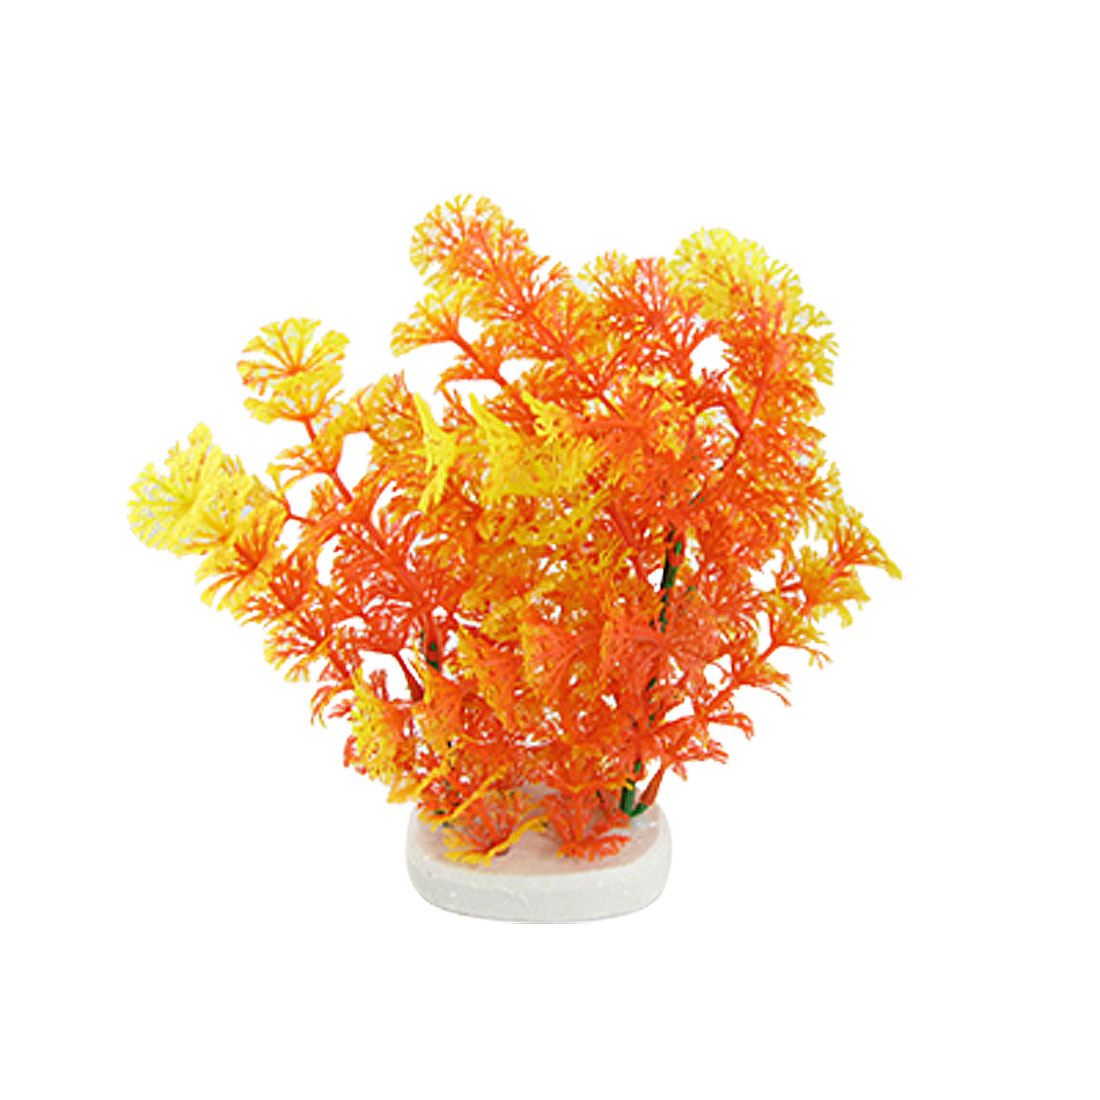 Orange Red Yellow Plastic Hottonia Inflata Plants Decoration for Aquarium